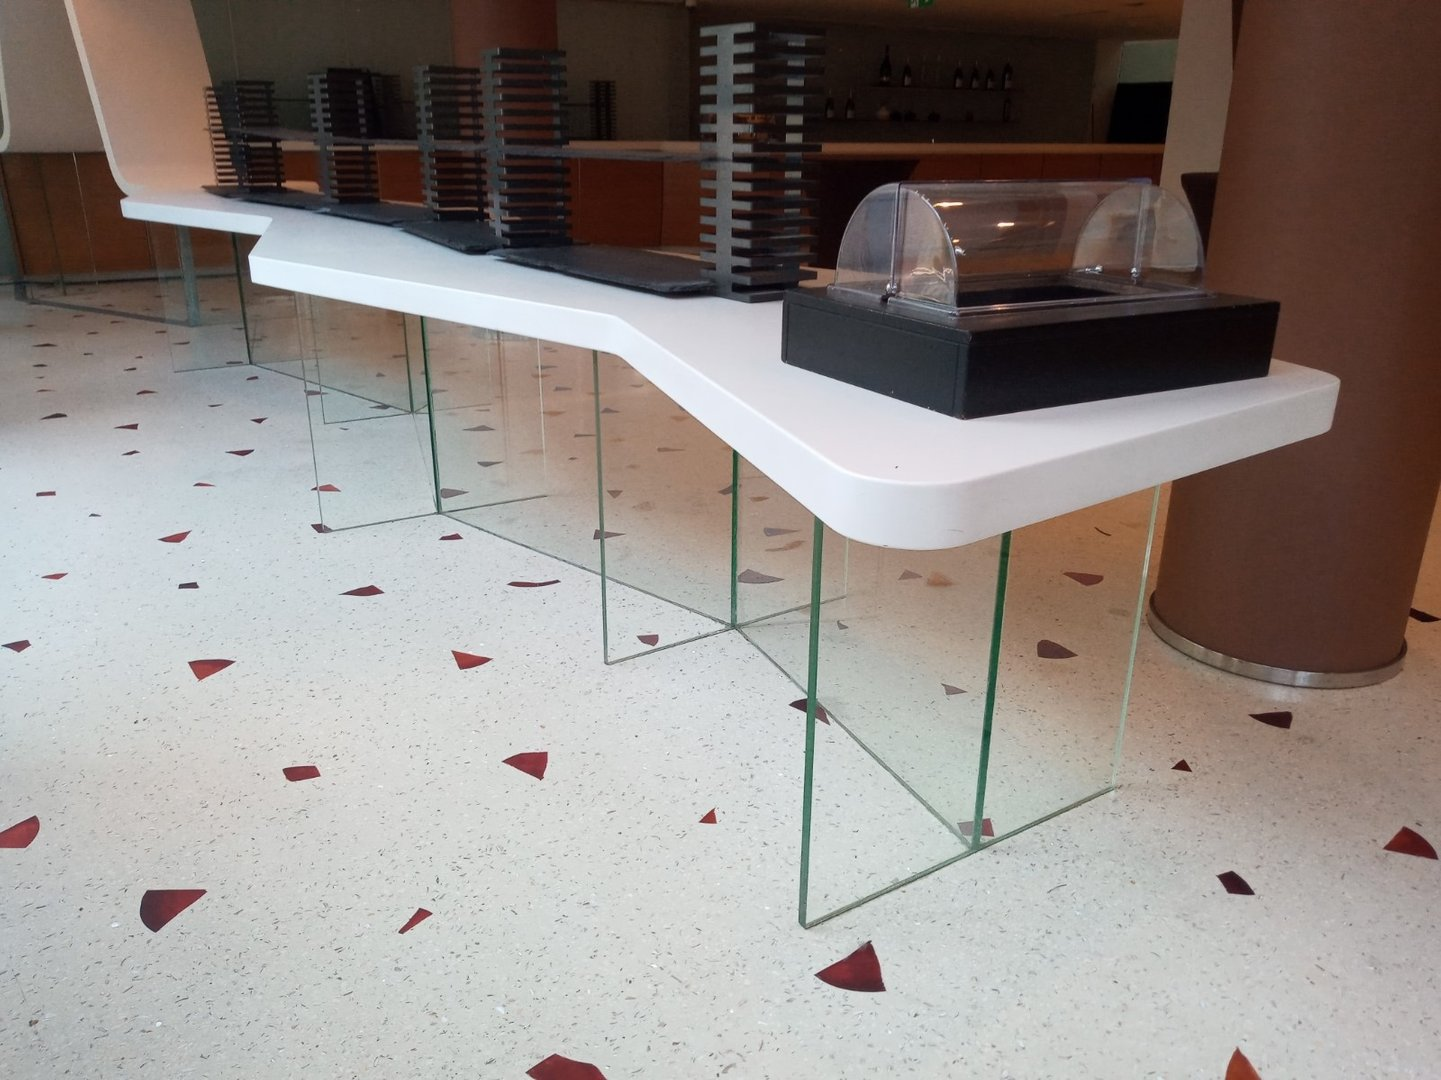 Accessible counter area